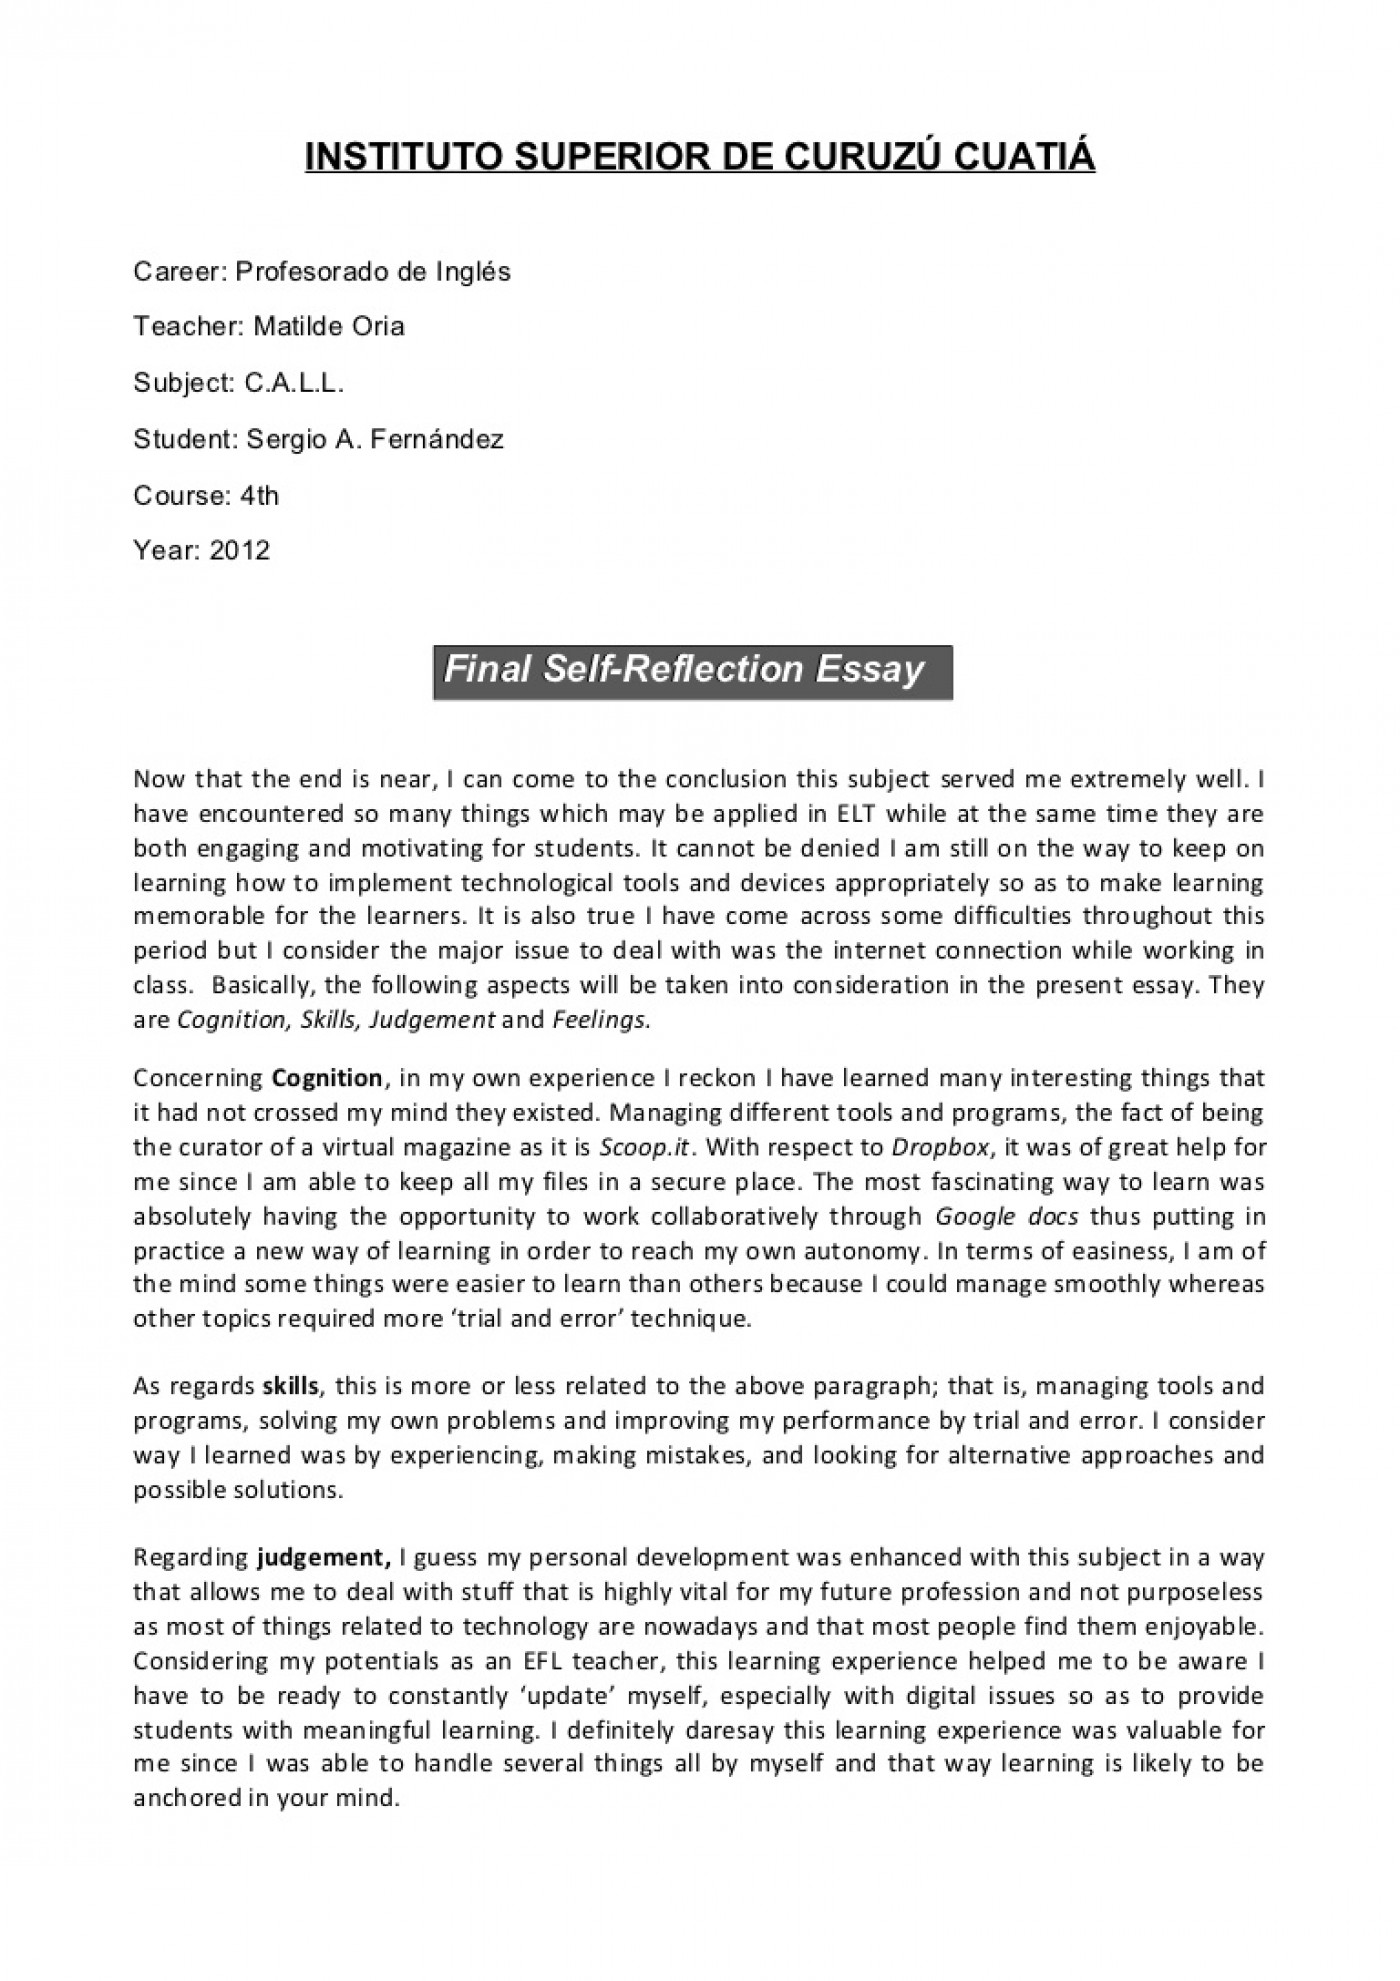 007 Reflectionsay Format Reflective Self Examples Mla Sample Sergio Finalself Reflectionessay Phpapp01 Thumbn Argumentative Apa Formal Tagalog Asa Critical Mba Scholarship Wondrous Reflection Essay Example Form Guidelines 1400